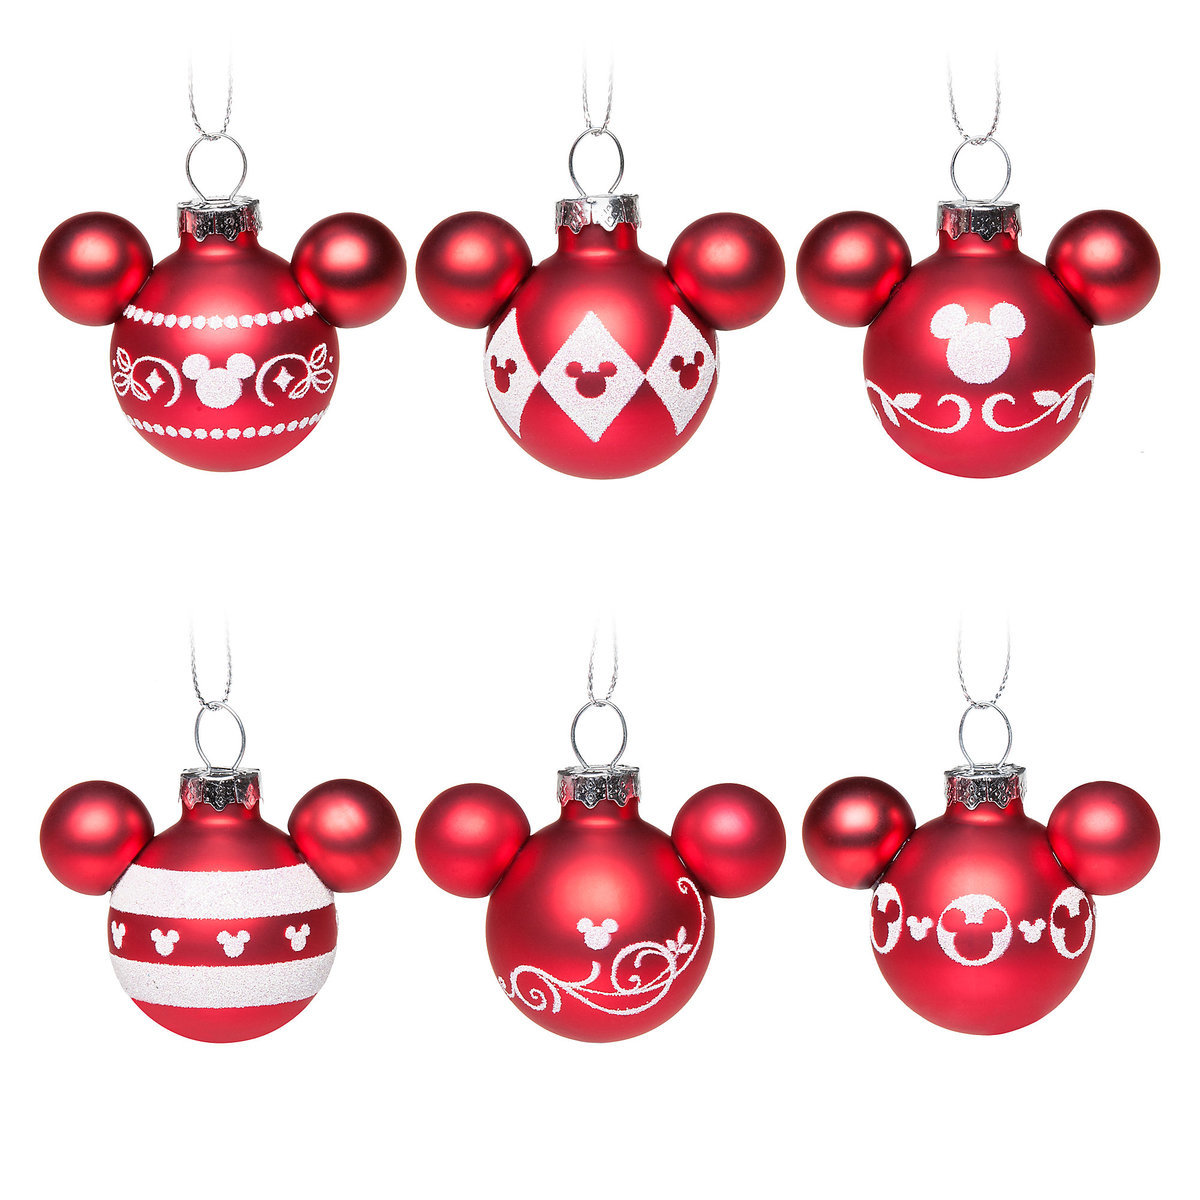 Disney Ornament Set - Mickey Icons - Red and White Peppermint